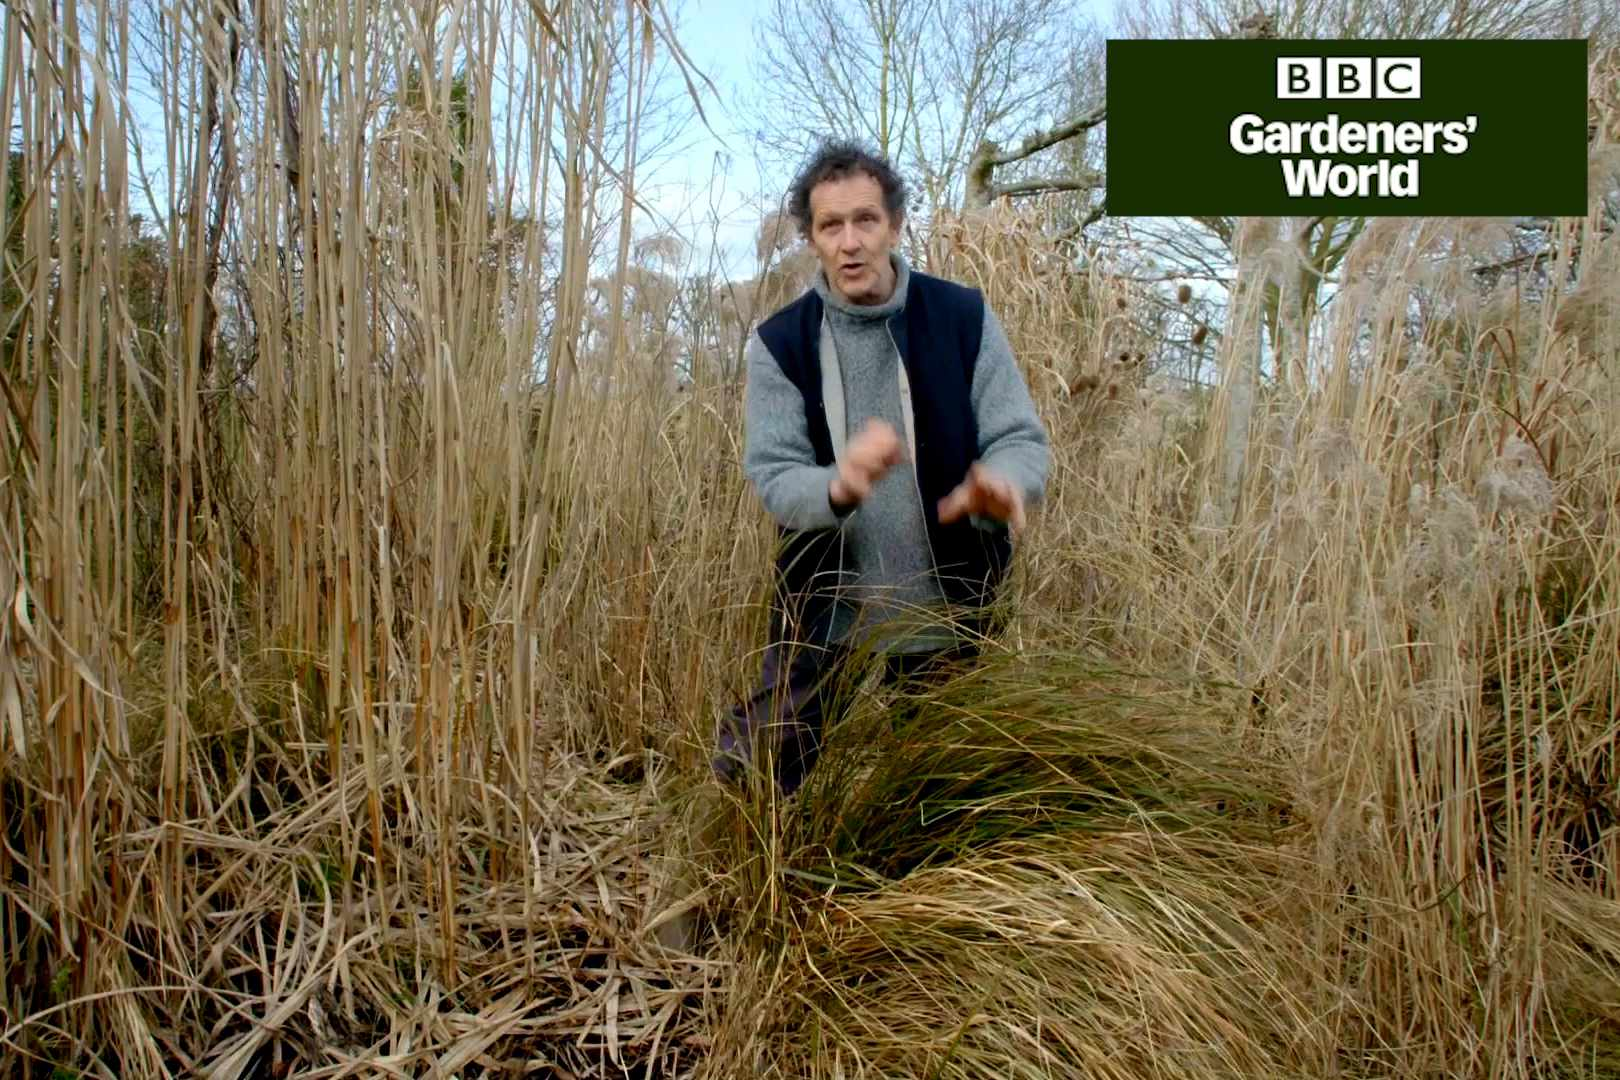 How to tidy ornamental grasses in spring - Gardeners' World video clip